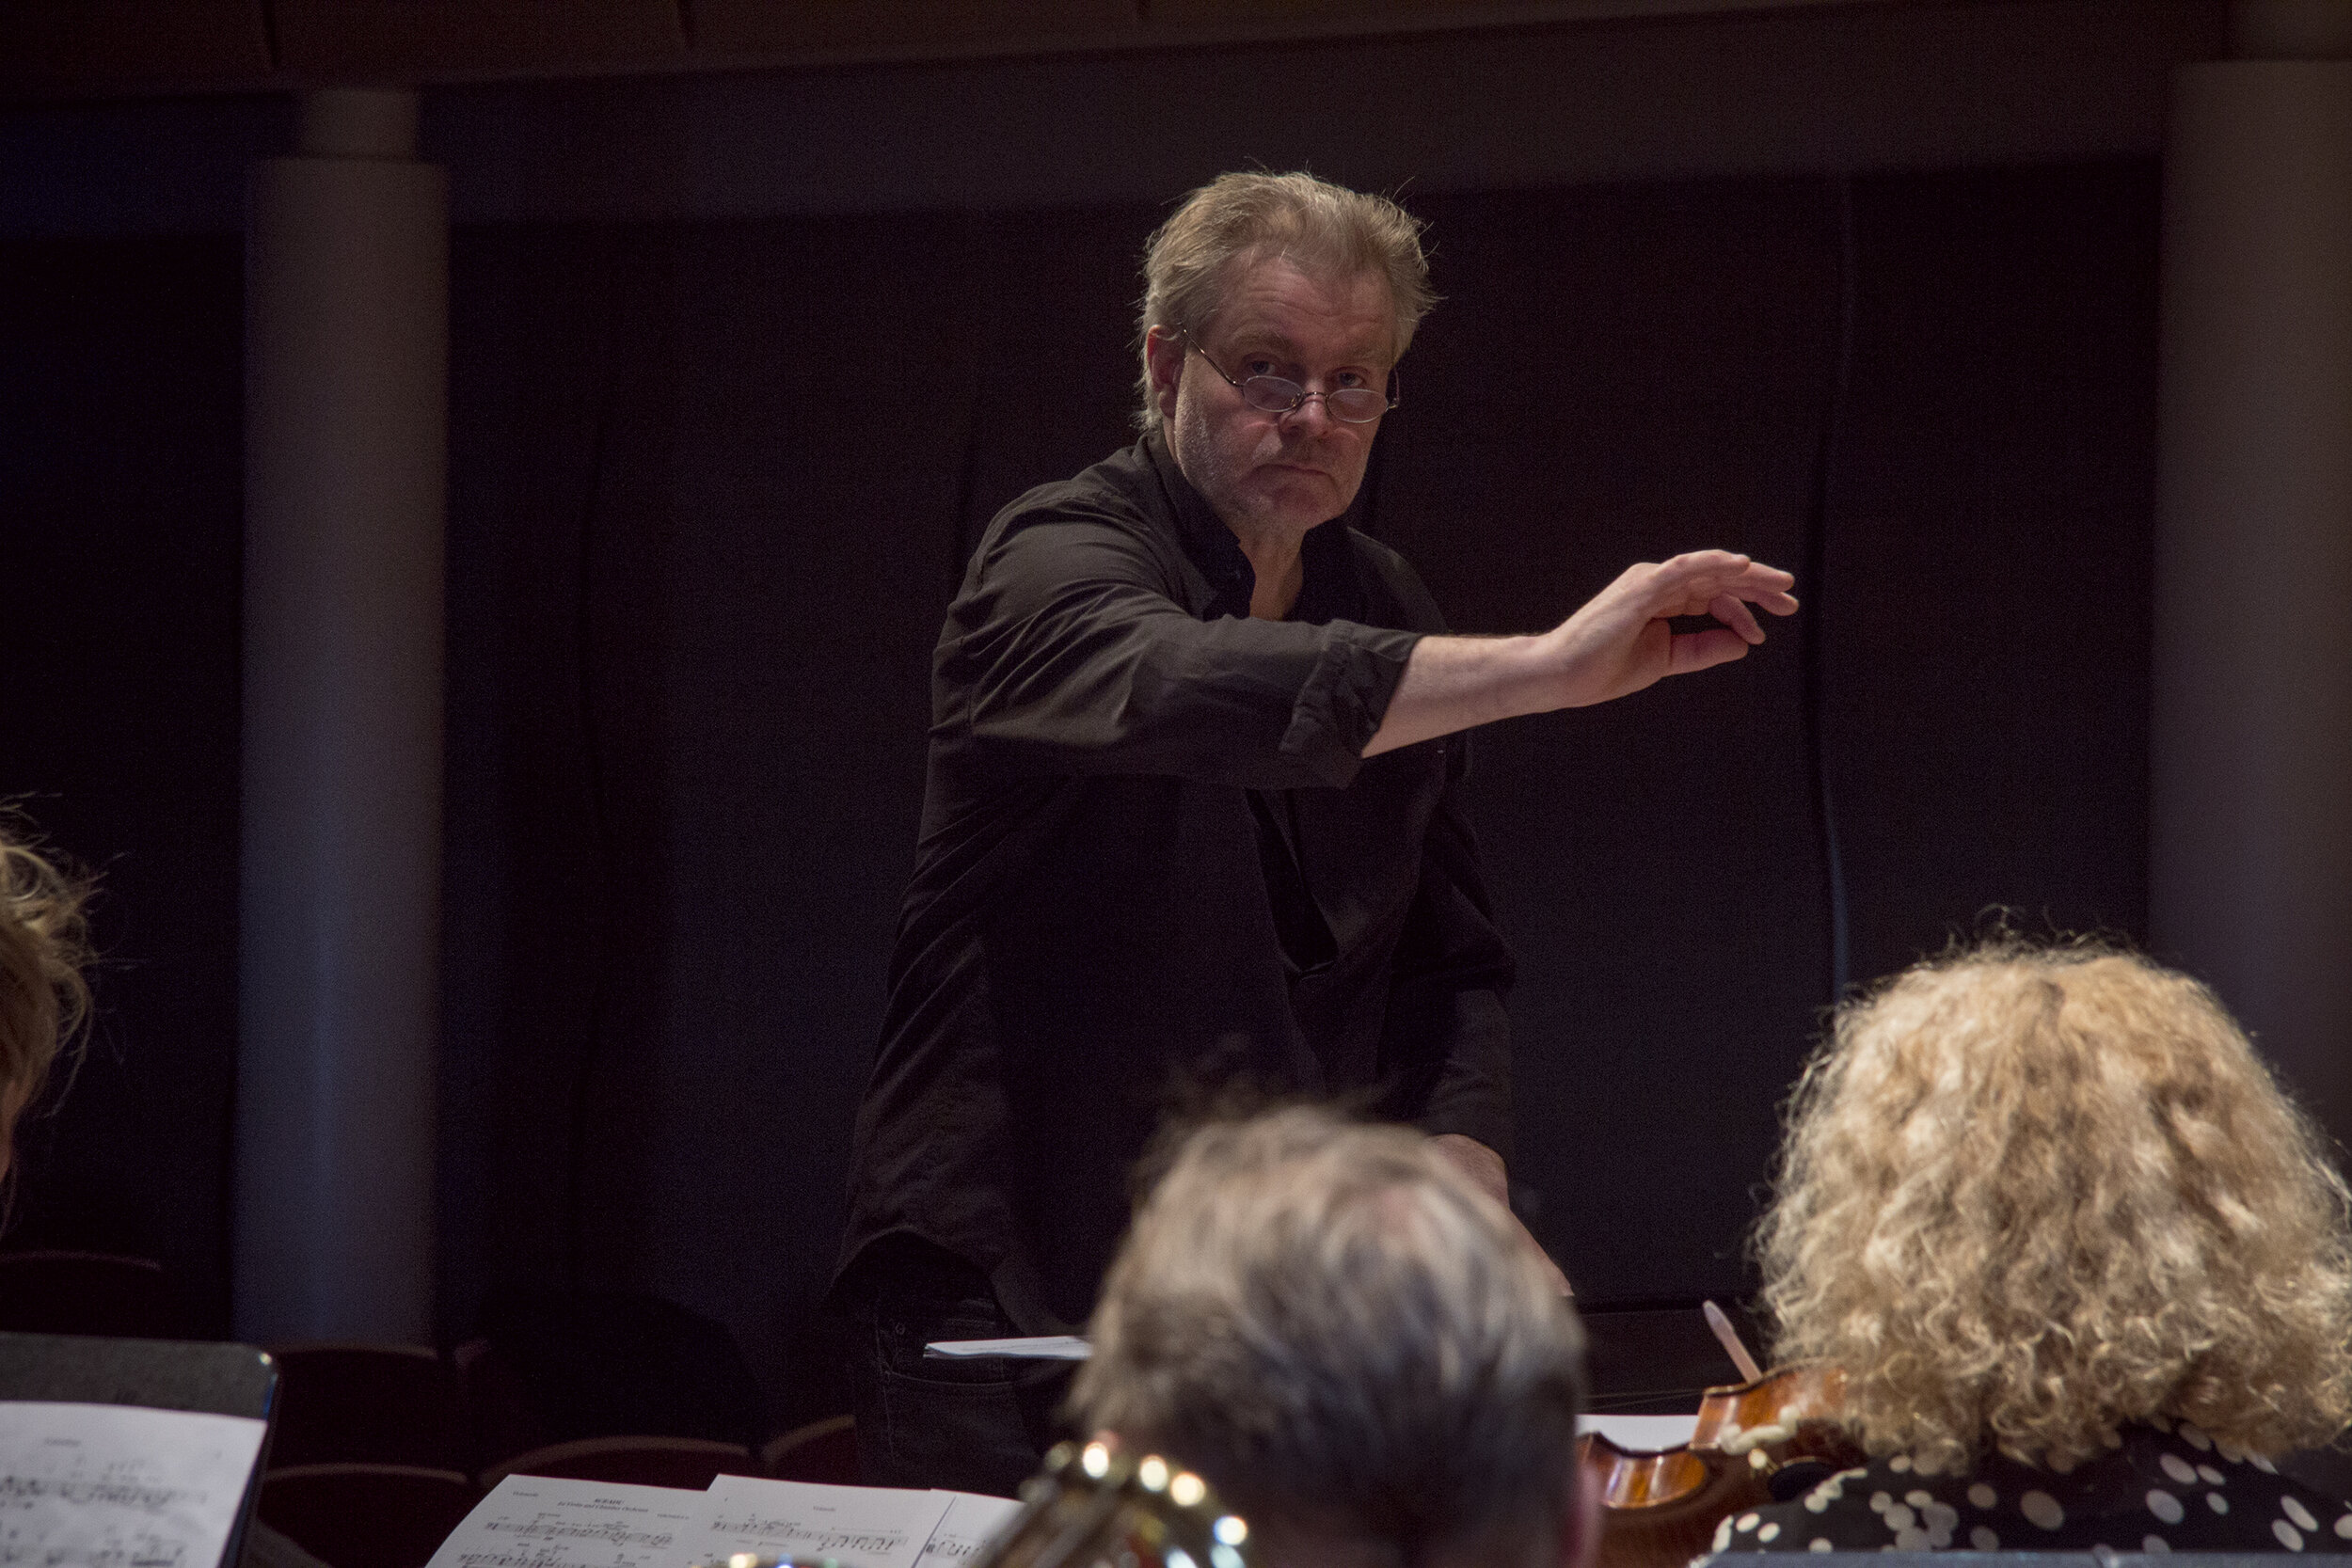 """About - """"Through their earnest, skillful and passionate work – including dozens of CD-releases, touring and participation in many of our foremost festivals – Caput has gratified innumerable listeners with their artistically eminent performances of contemporary music by Nordic composers, ever since it was founded in 1987."""""""